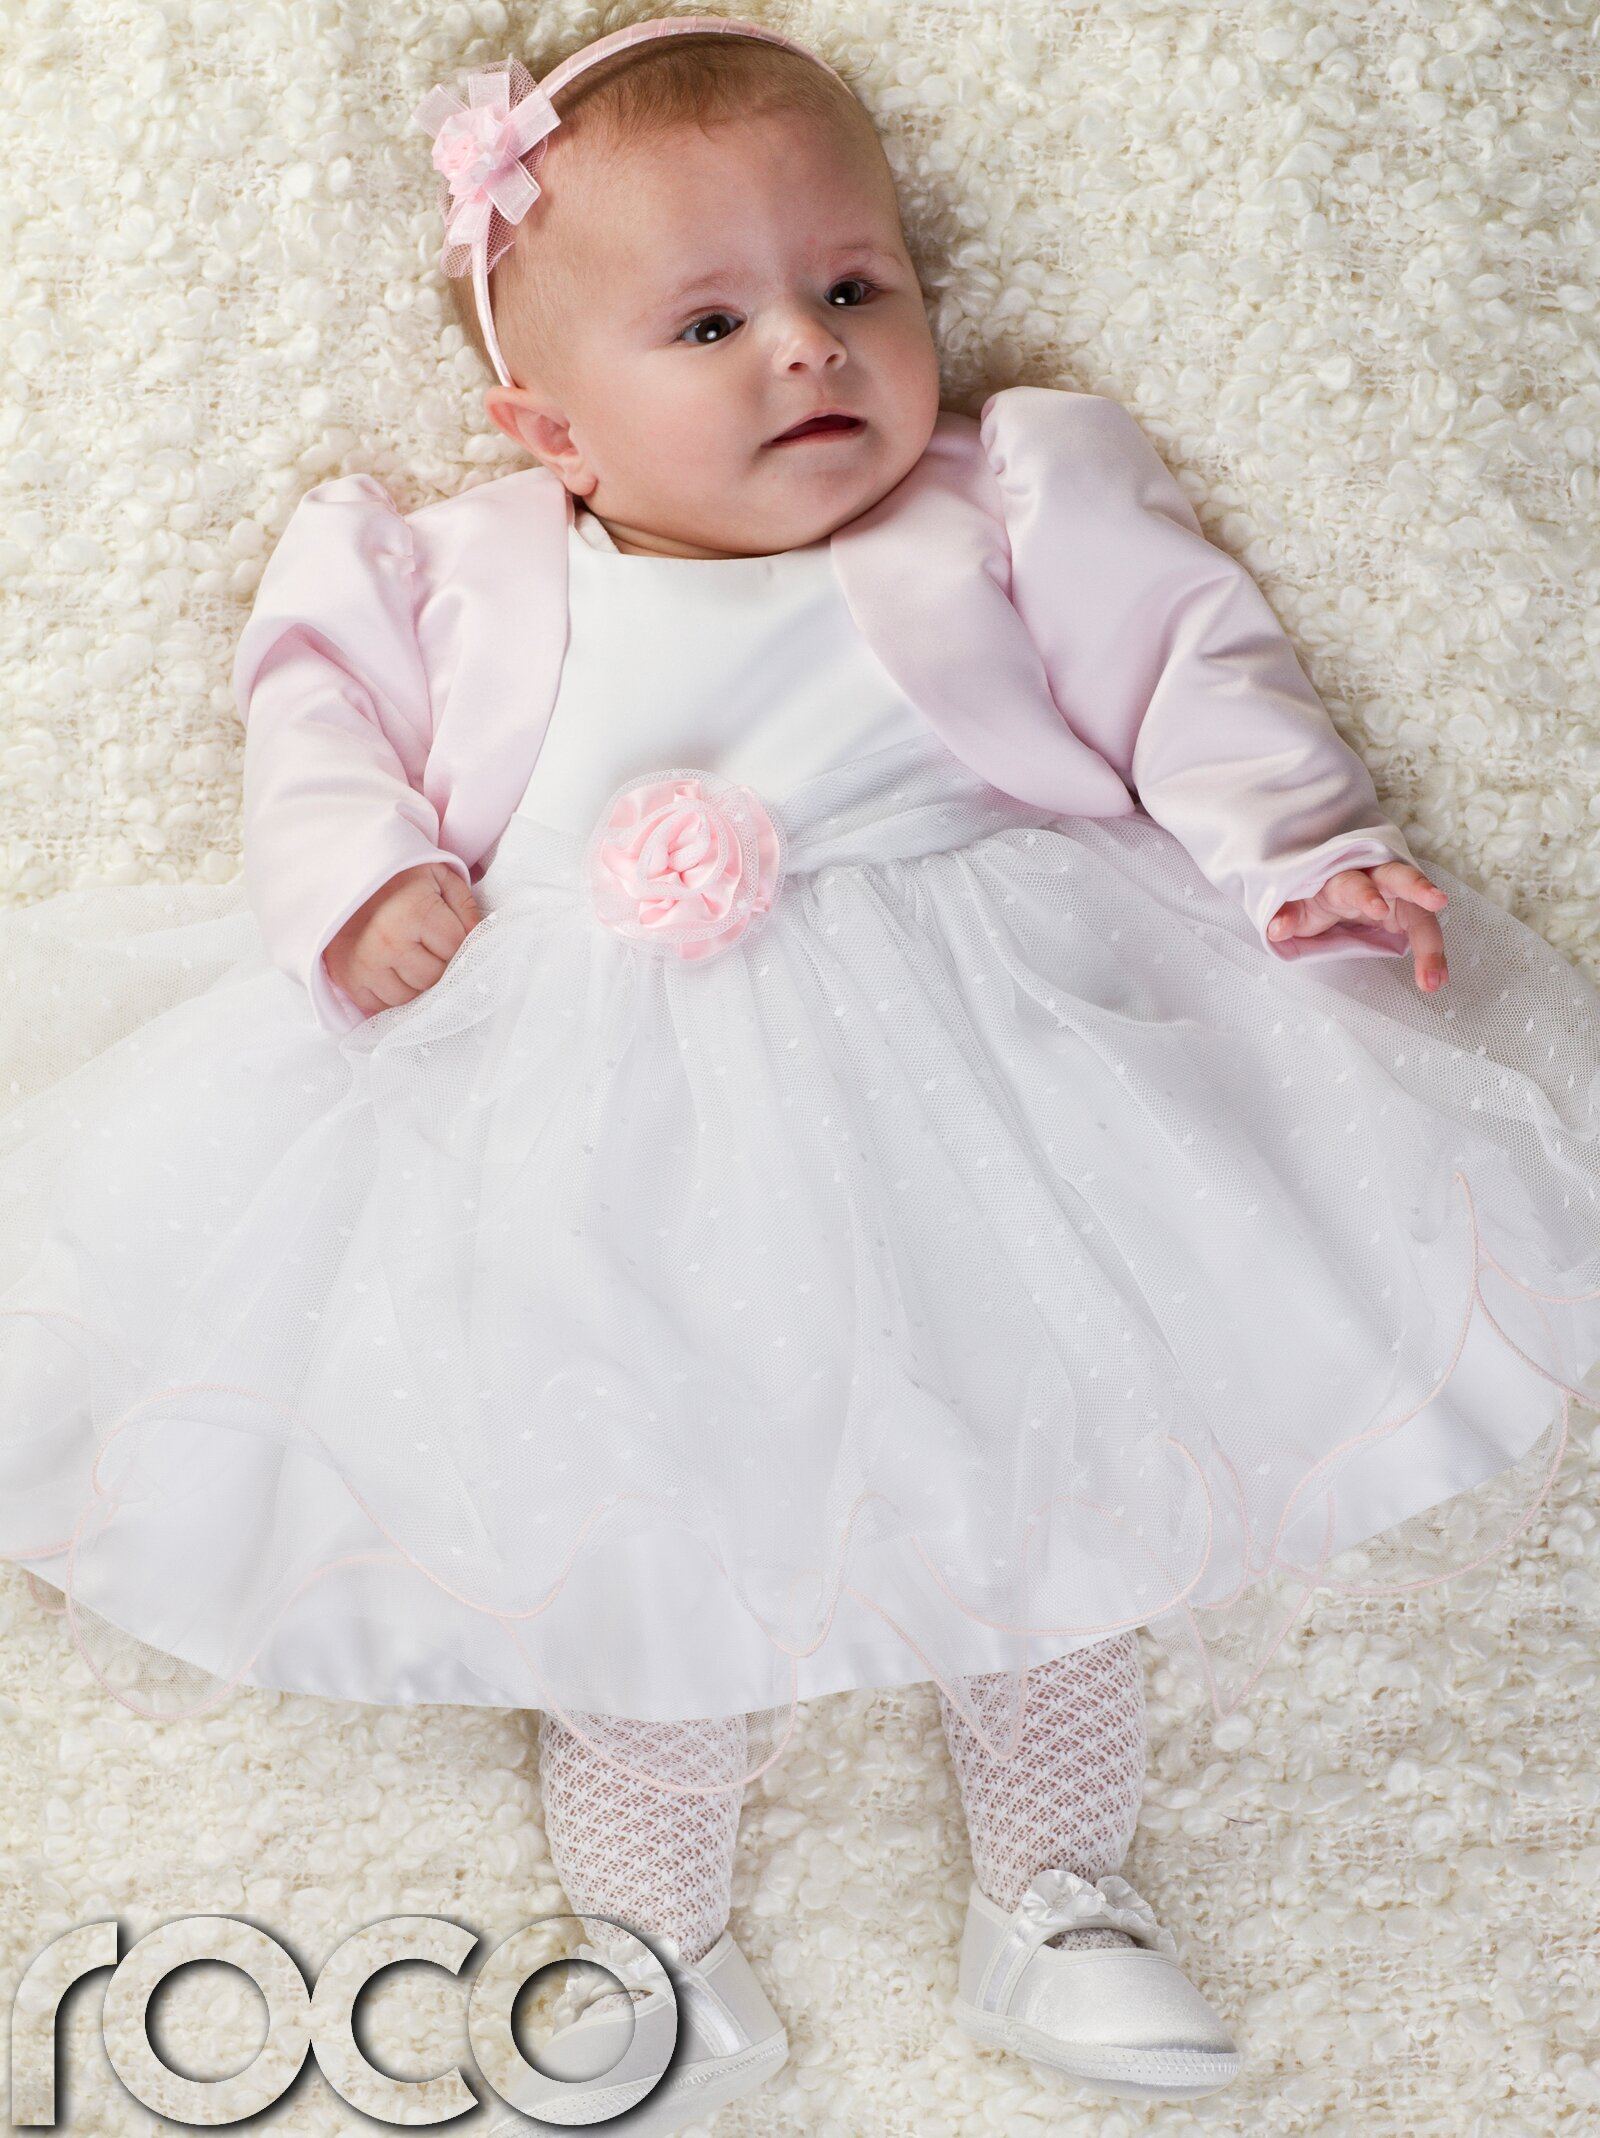 wedding dresses for baby girl pictures ideas guide to With baby girl wedding dresses